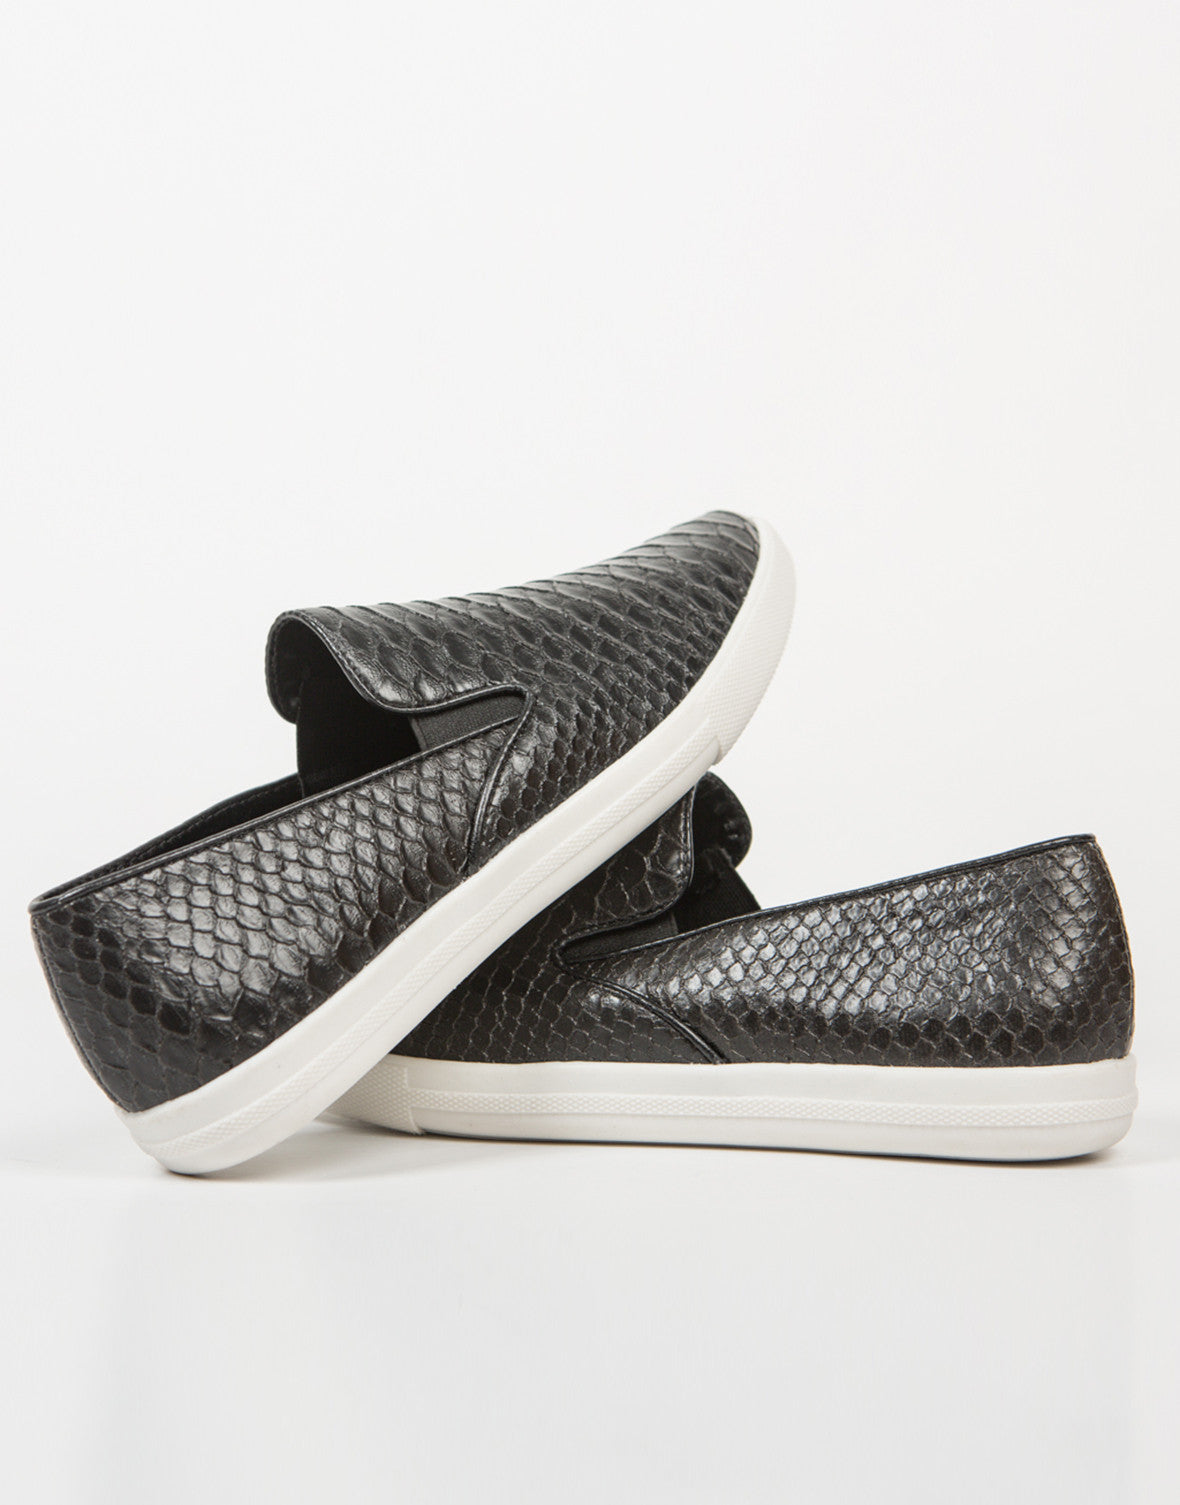 Front View of Snake Skin Slip On Sneakers